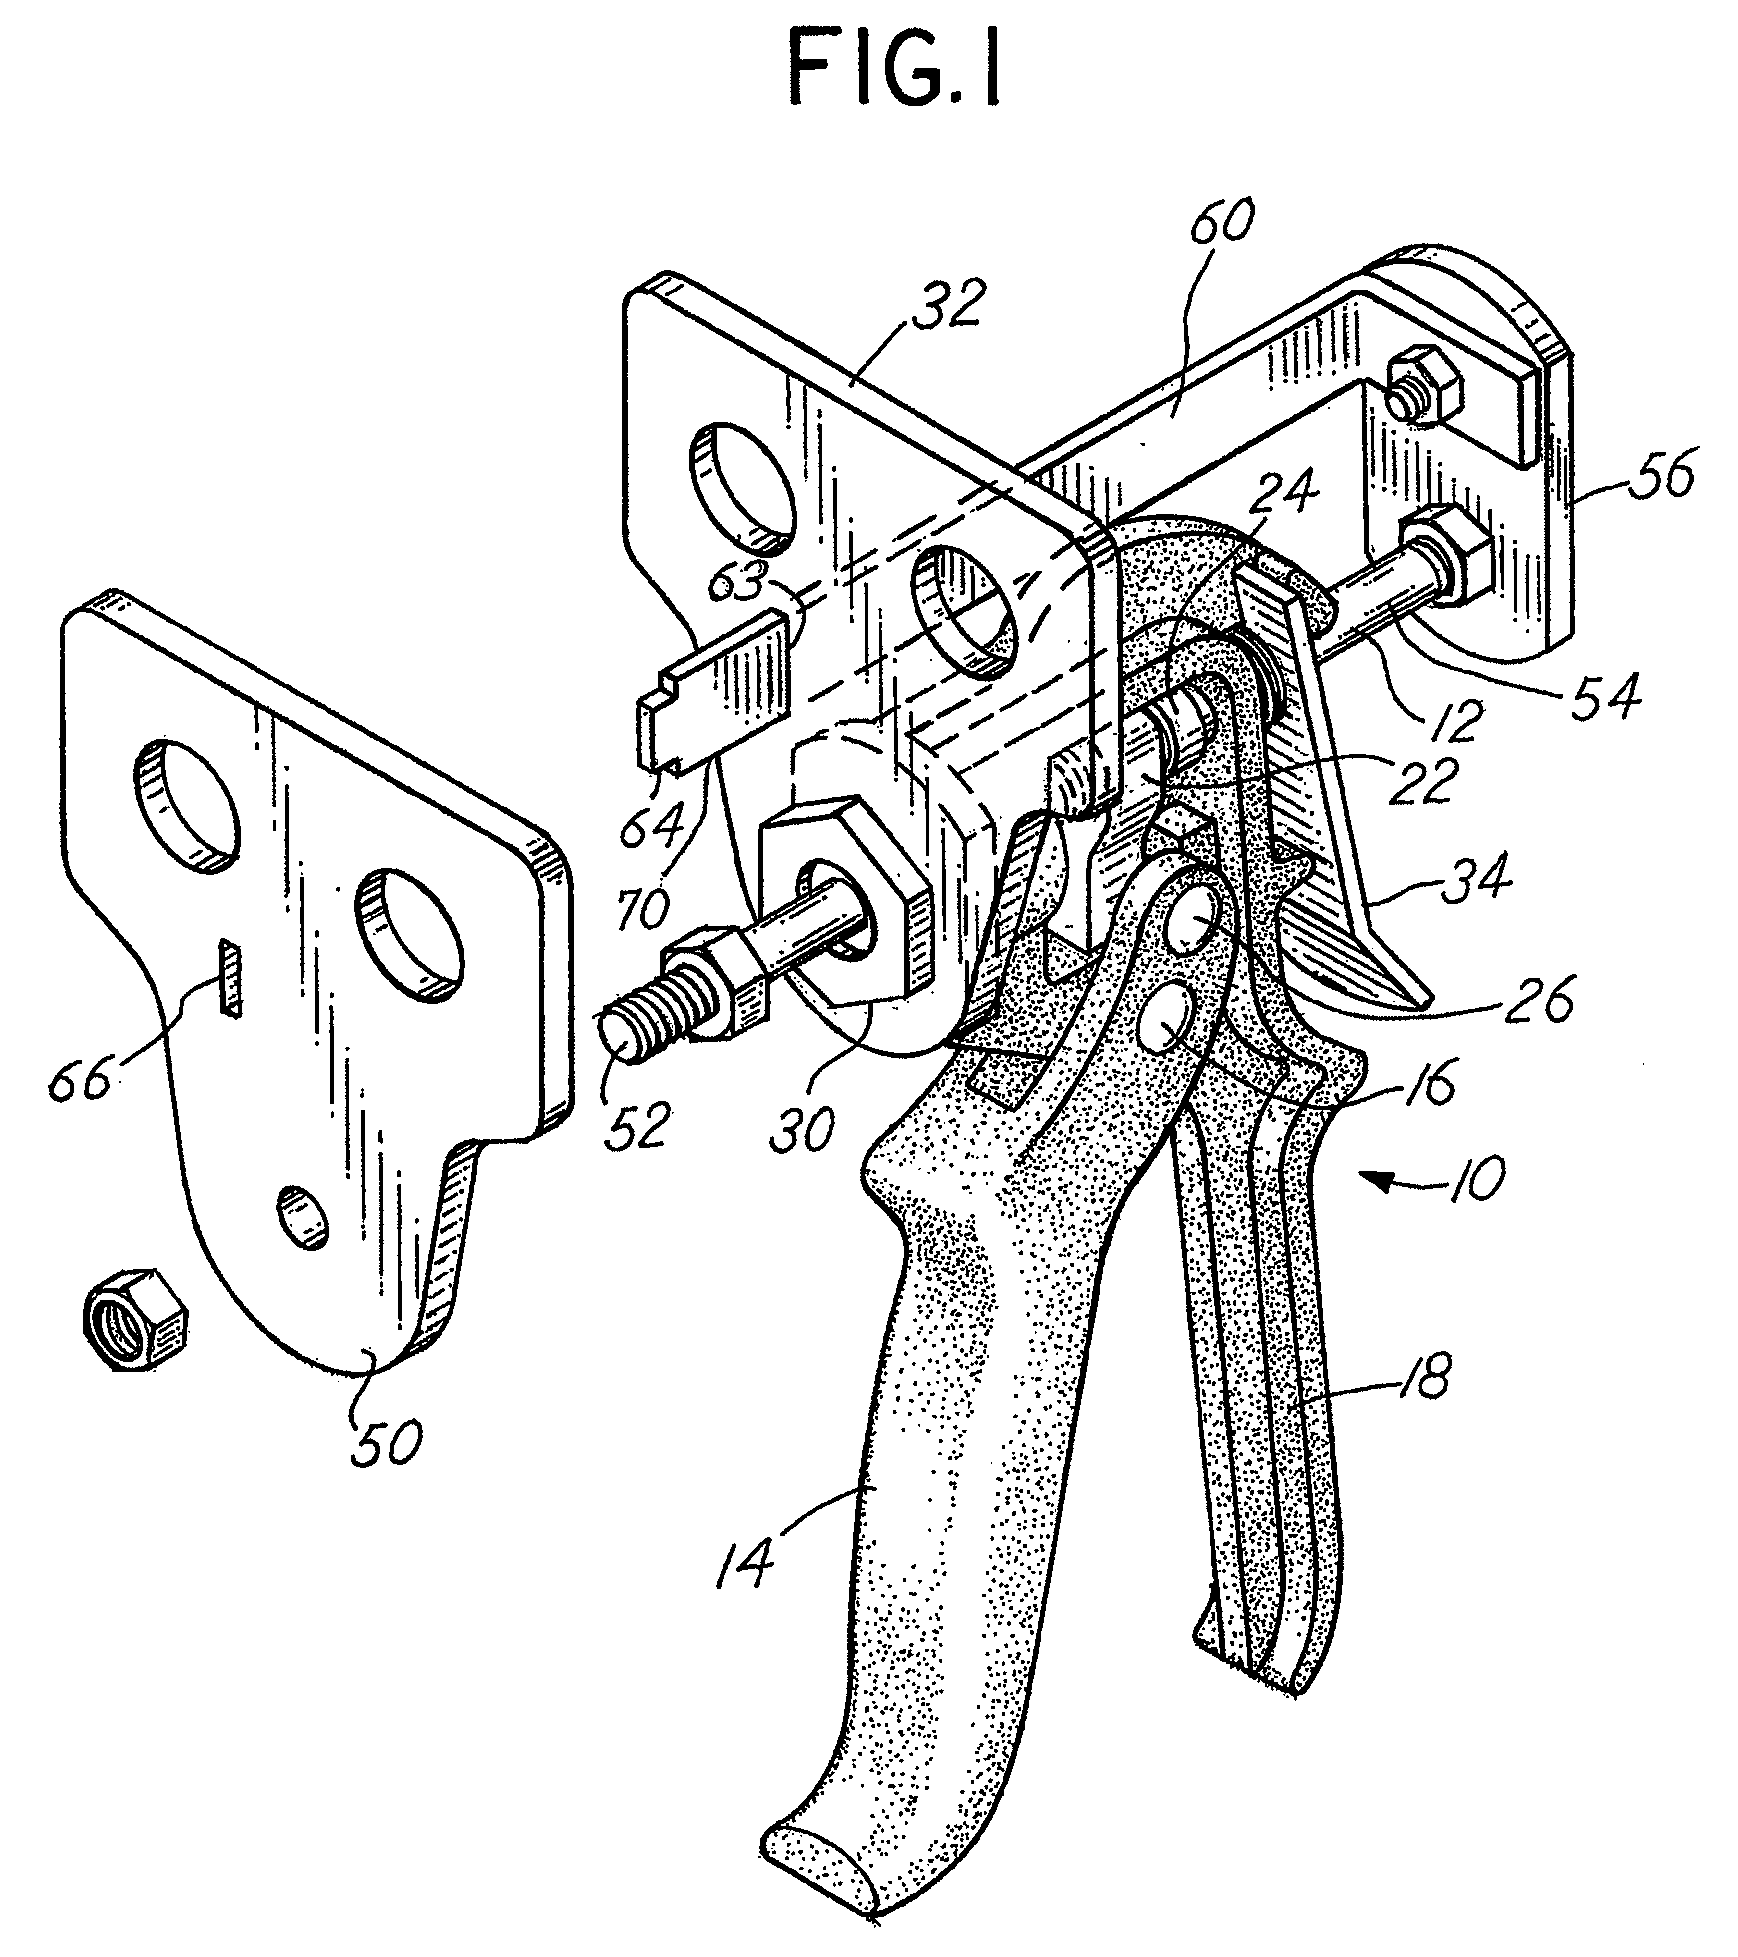 patent us8393063 brake pad spreader tool for disc brake assemblies 2 4 Liter Chevy Engine Wires for the Starter Motor patent drawing